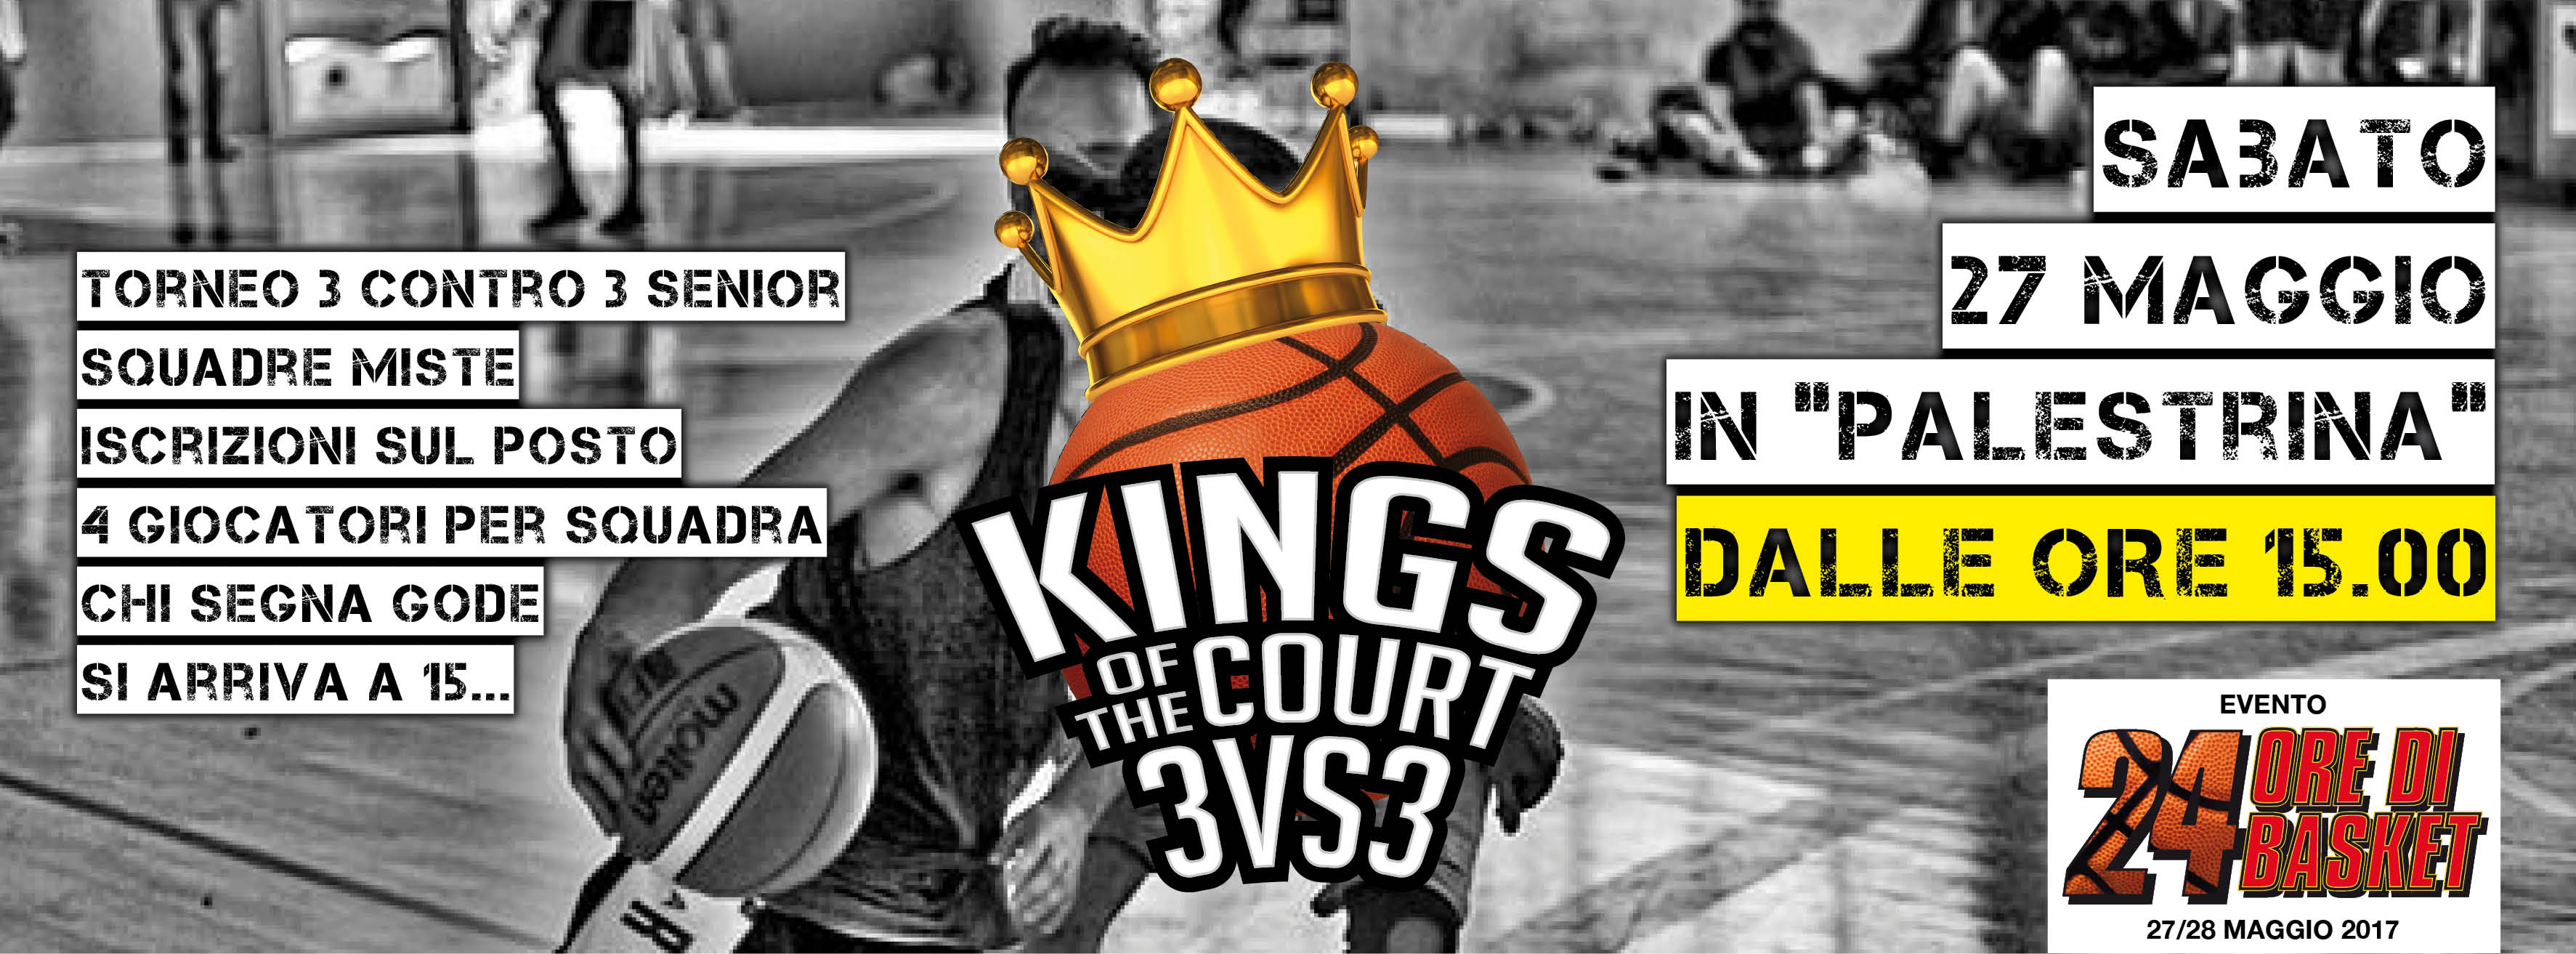 5° King of the Court - 3 vs 3